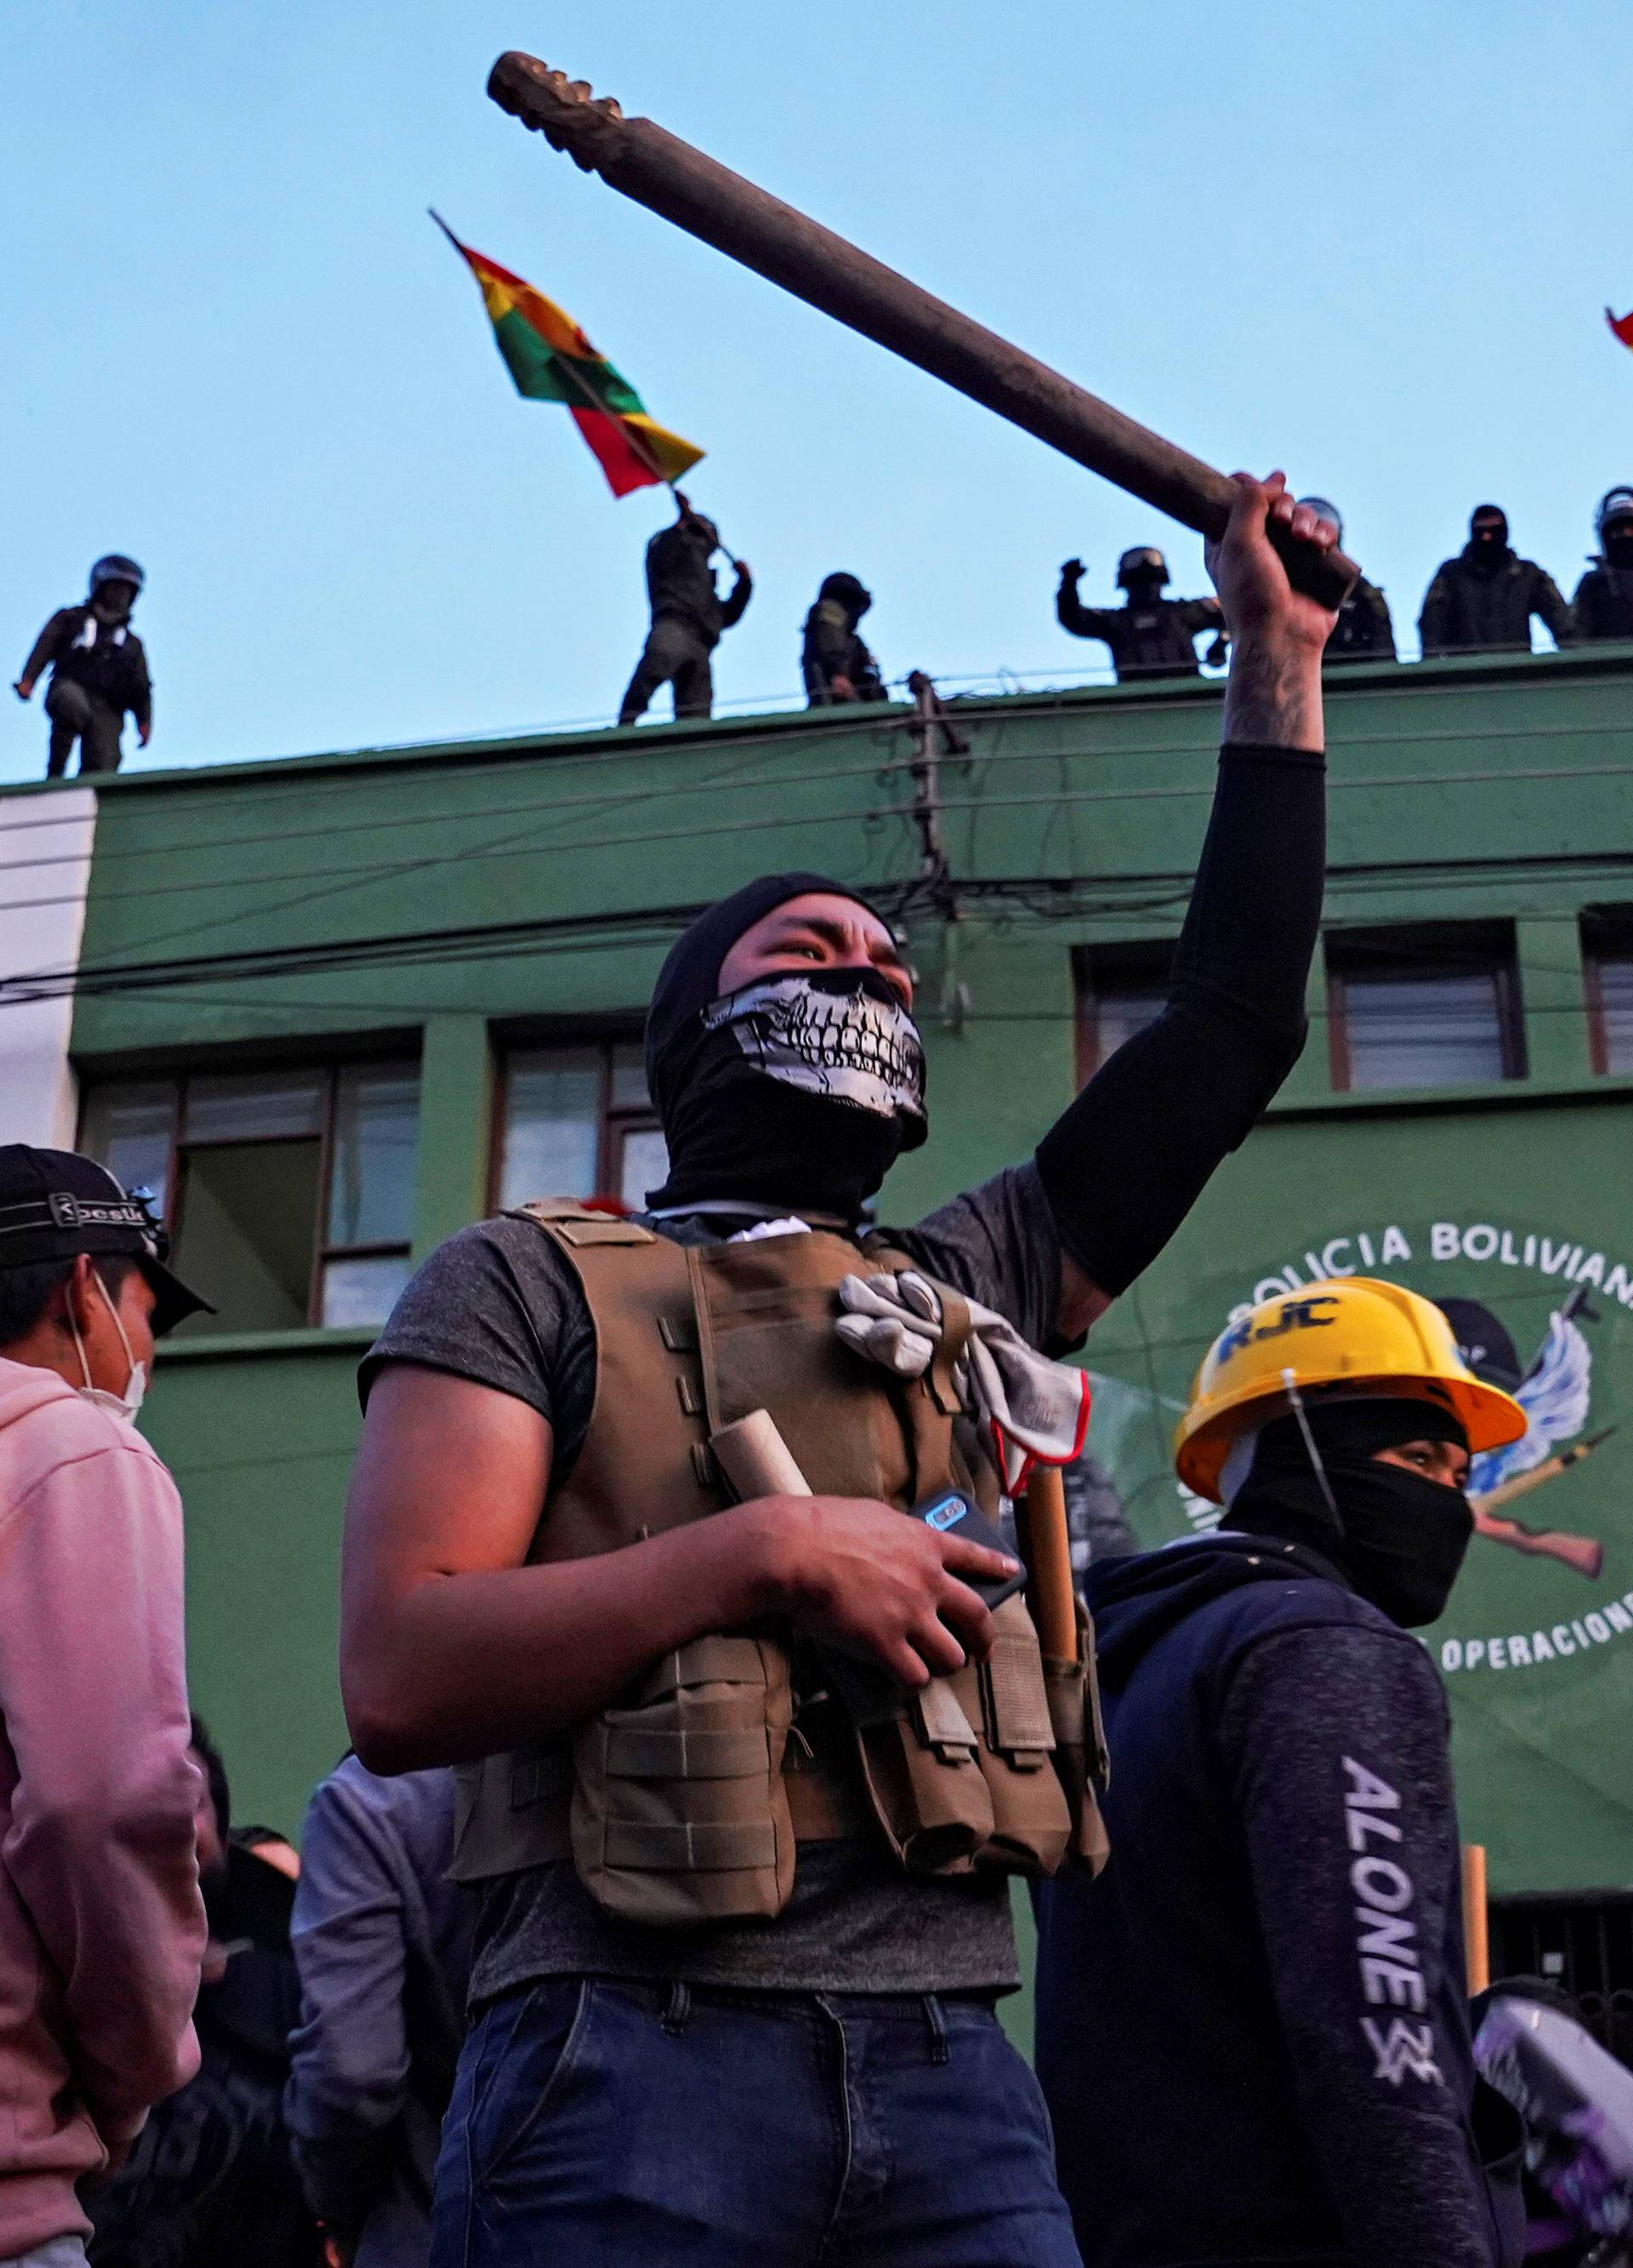 Opponents to Bolivia's President Evo Morales react as police officers stand on the roof of their headquarters, in Cochabamba